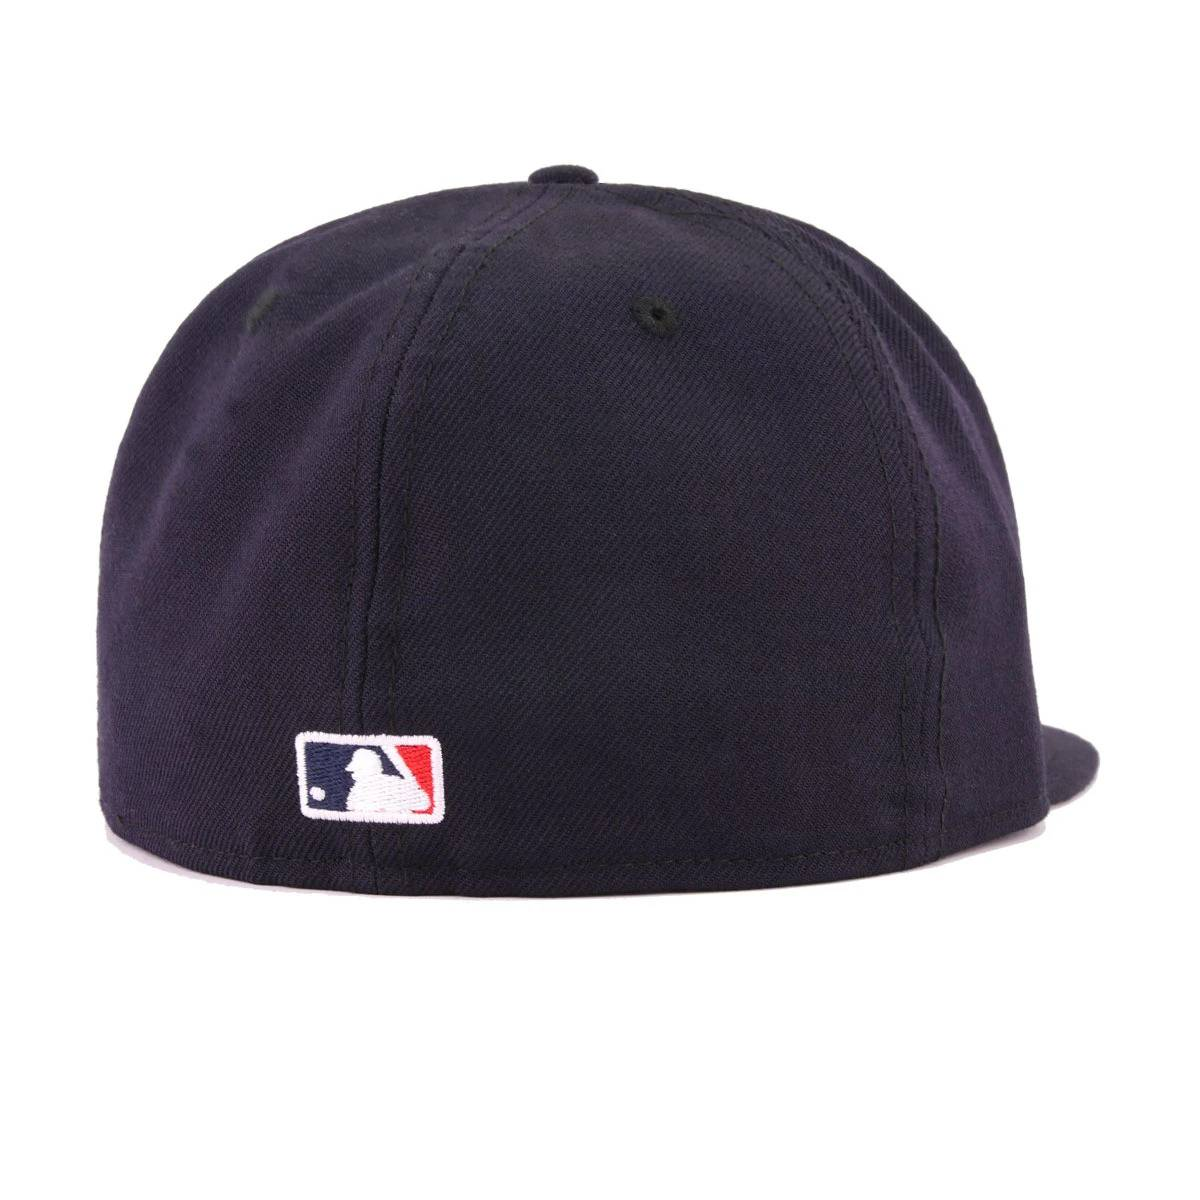 New York Yankees Navy Cooperstown 2000 World Series New Era 59Fifty Fitted